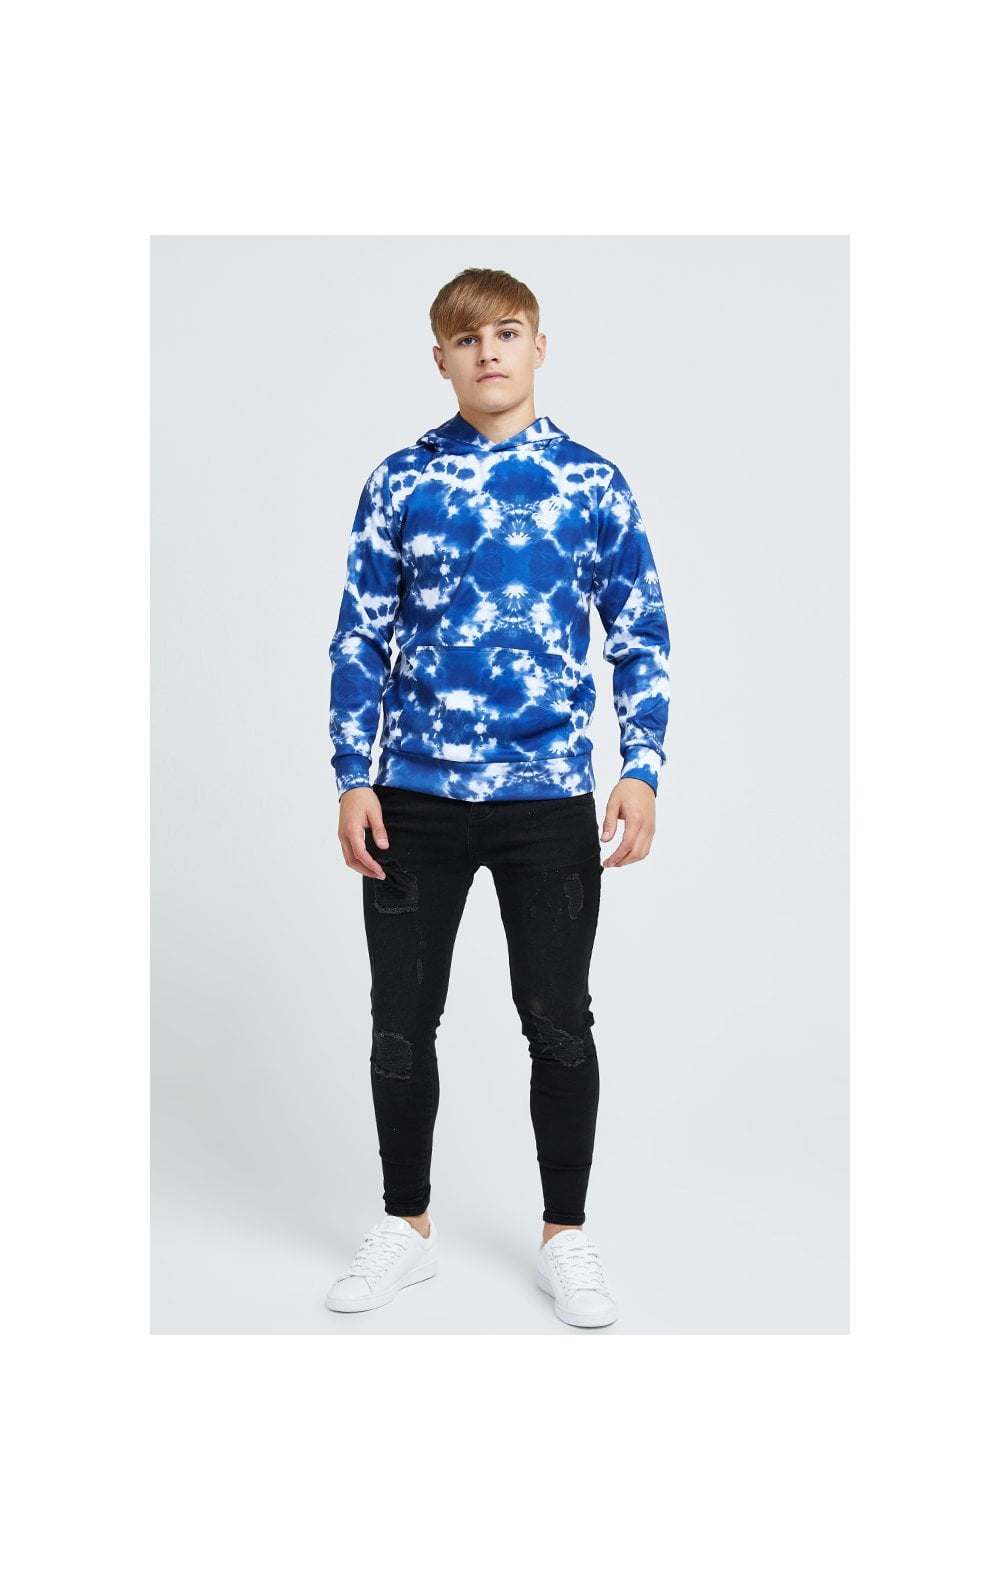 Illusive London Tie Dye Print Hoodie - Blue & White (2)